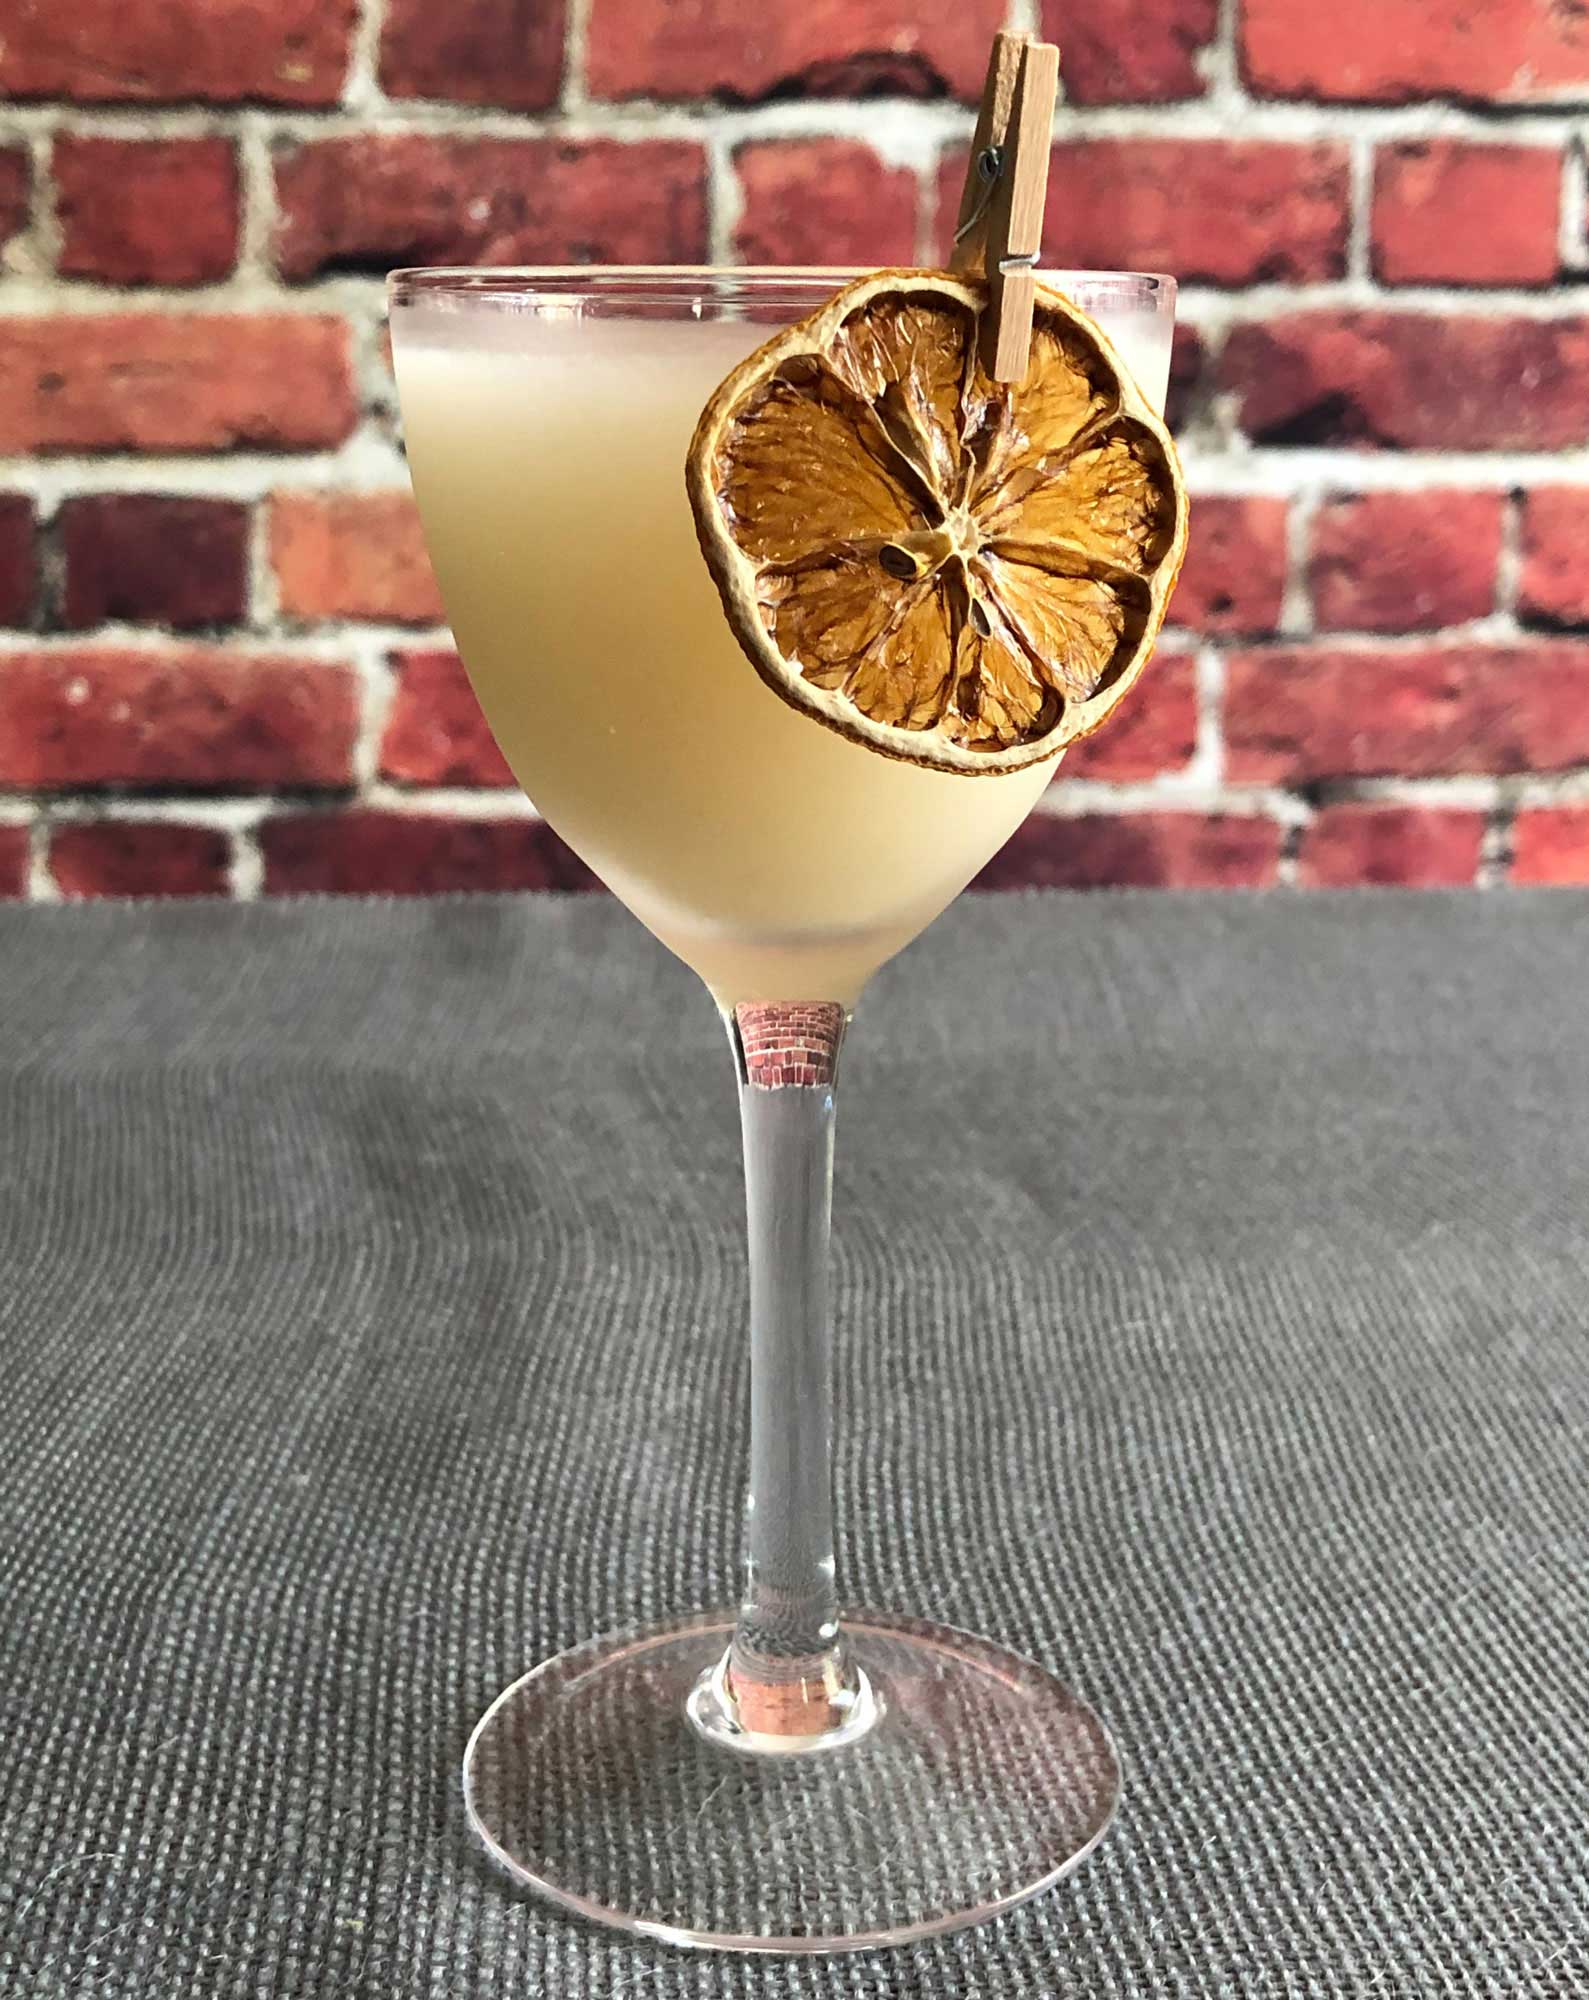 An example of the Royal Hawaiian, the mixed drink (cocktail) featuring Hayman's Royal Dock Navy Strength Gin, pineapple juice, orgeat, and lemon juice; photo by Lee Edwards